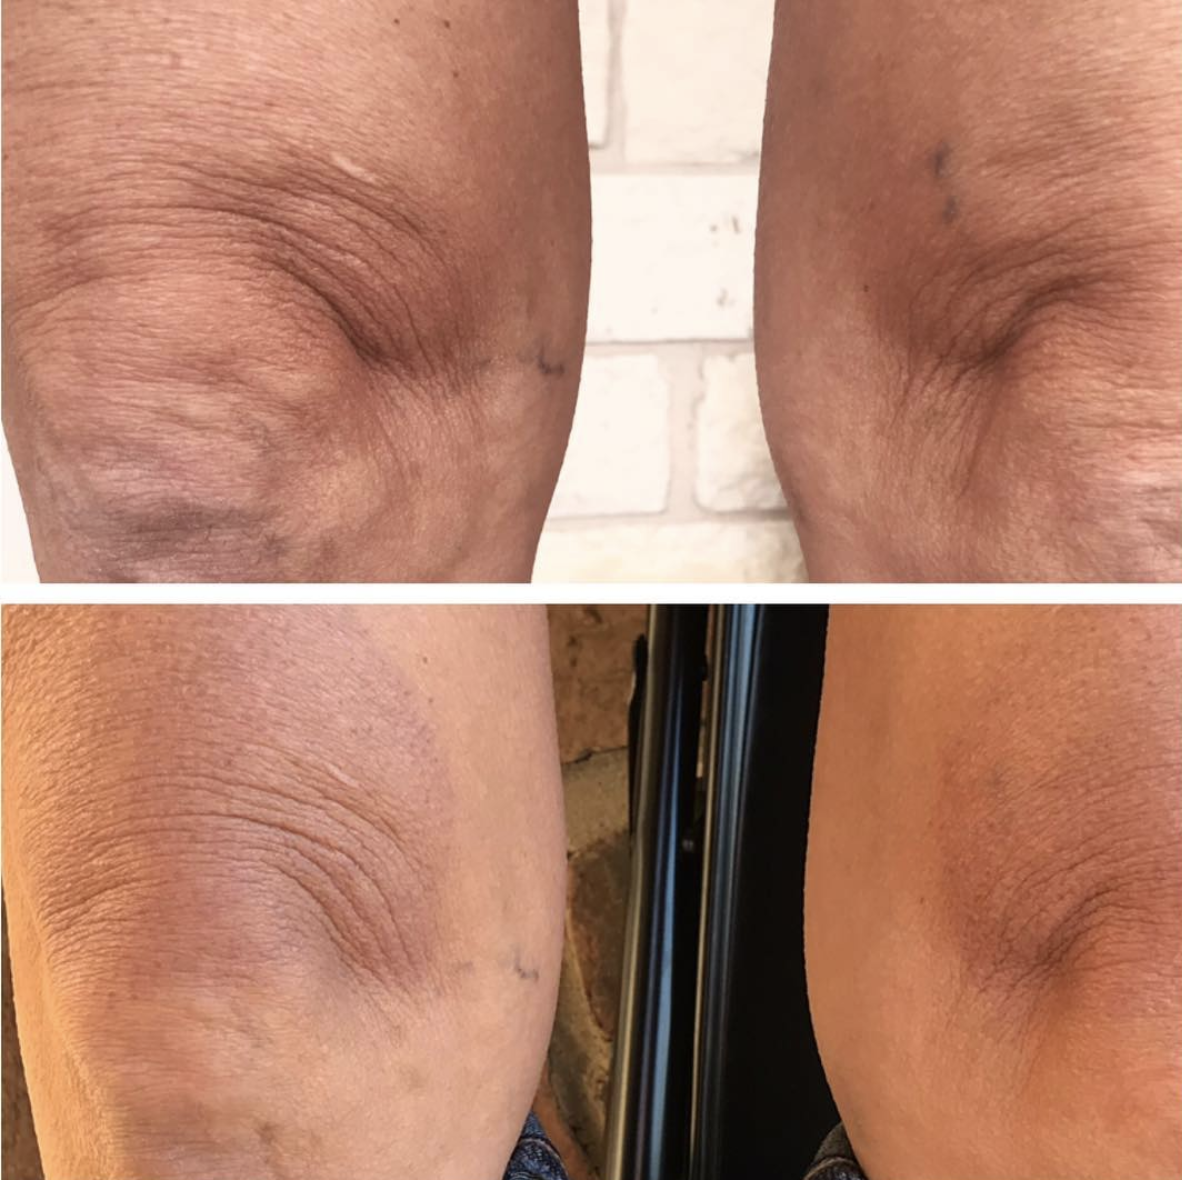 Knee lift, one treatment, 2 months healed. Overall tightening of skin. Reduction of vein visibility. Client experienced of the treated area - this will heal itself over time or can be treated with a serum to correct more quickly.